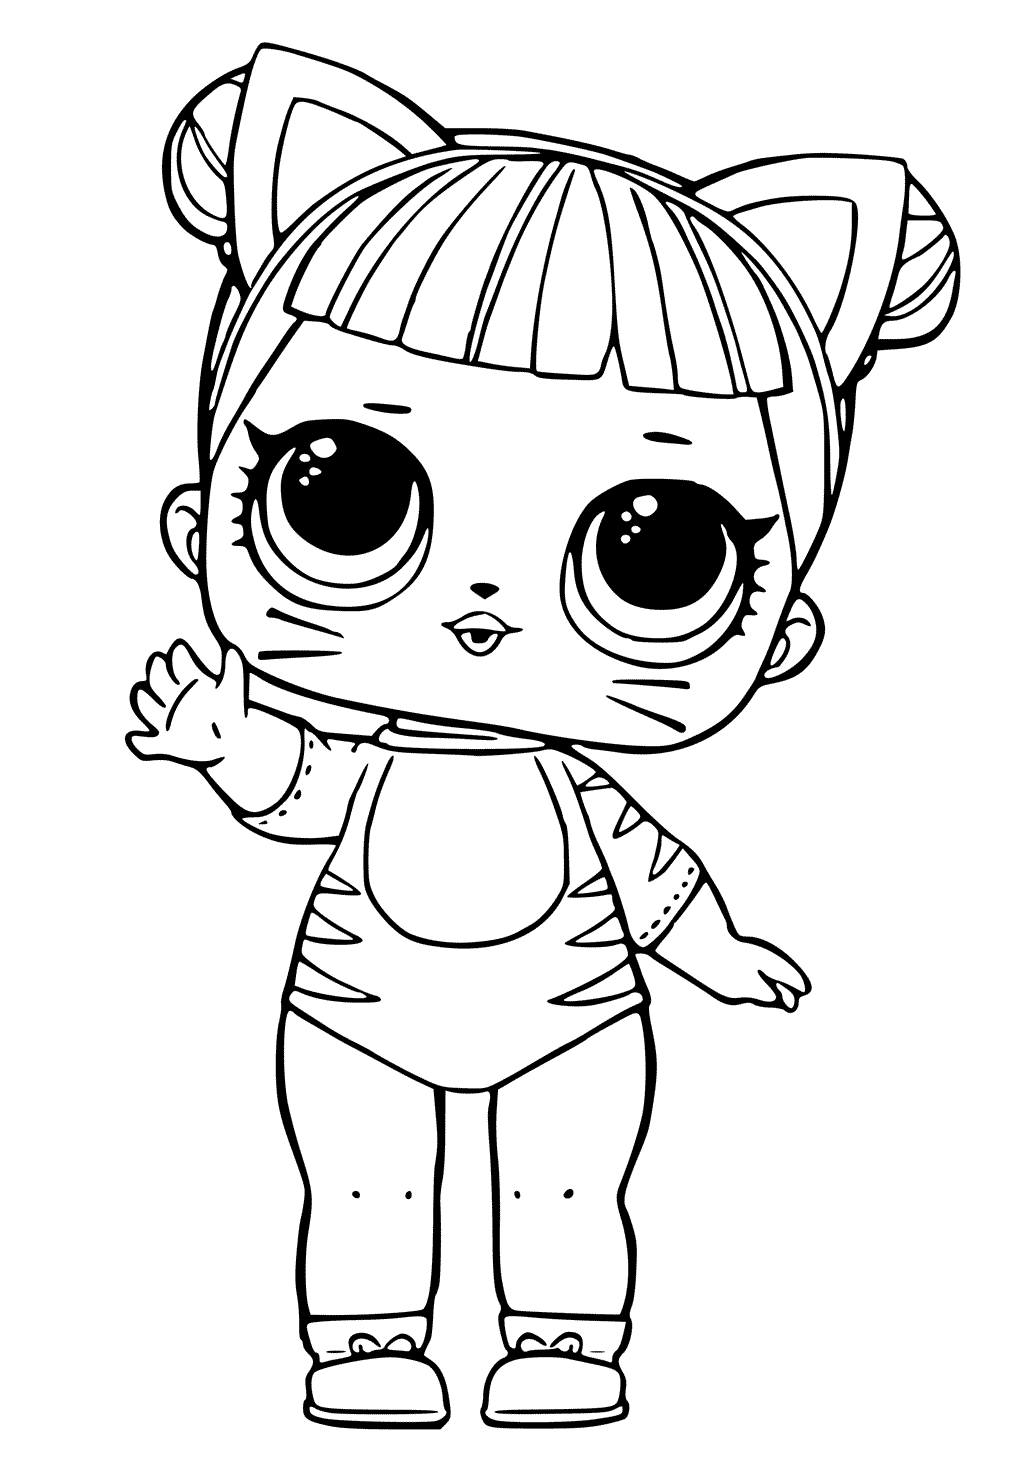 Lol Dolls Coloring Pages Printables Lol Dolls Lol Dolls